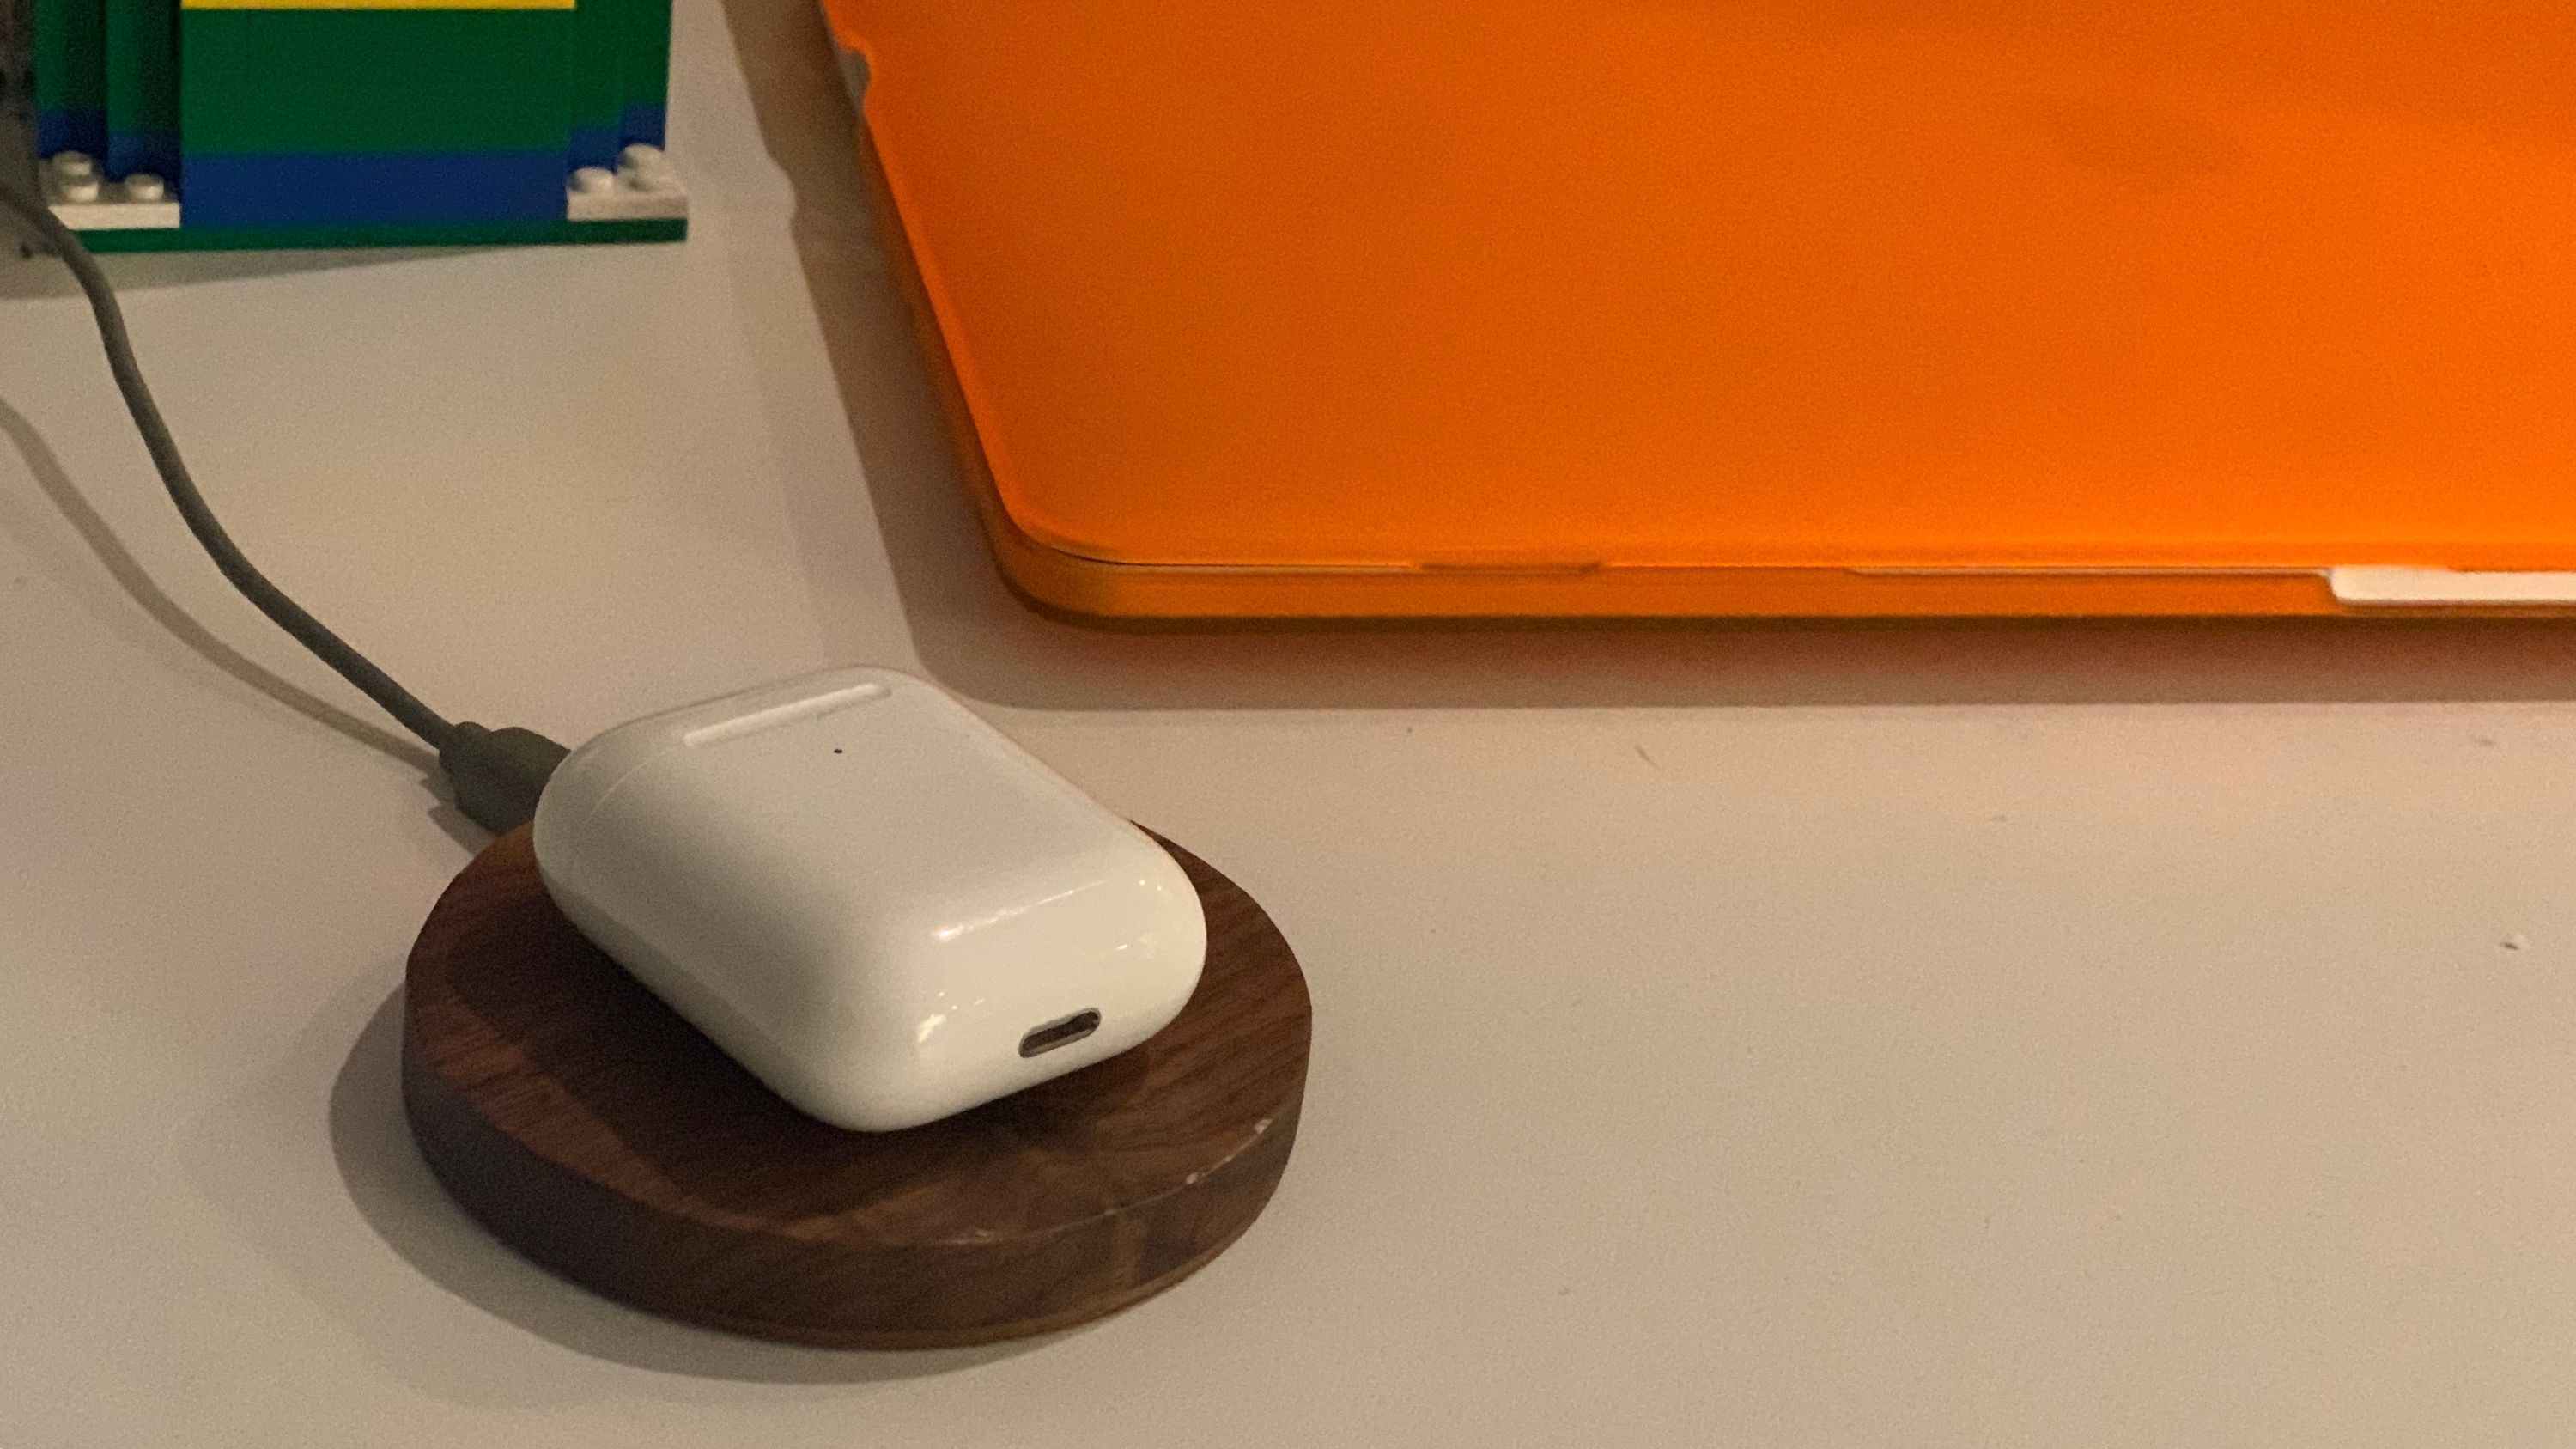 Airpods Charging Wirelessly